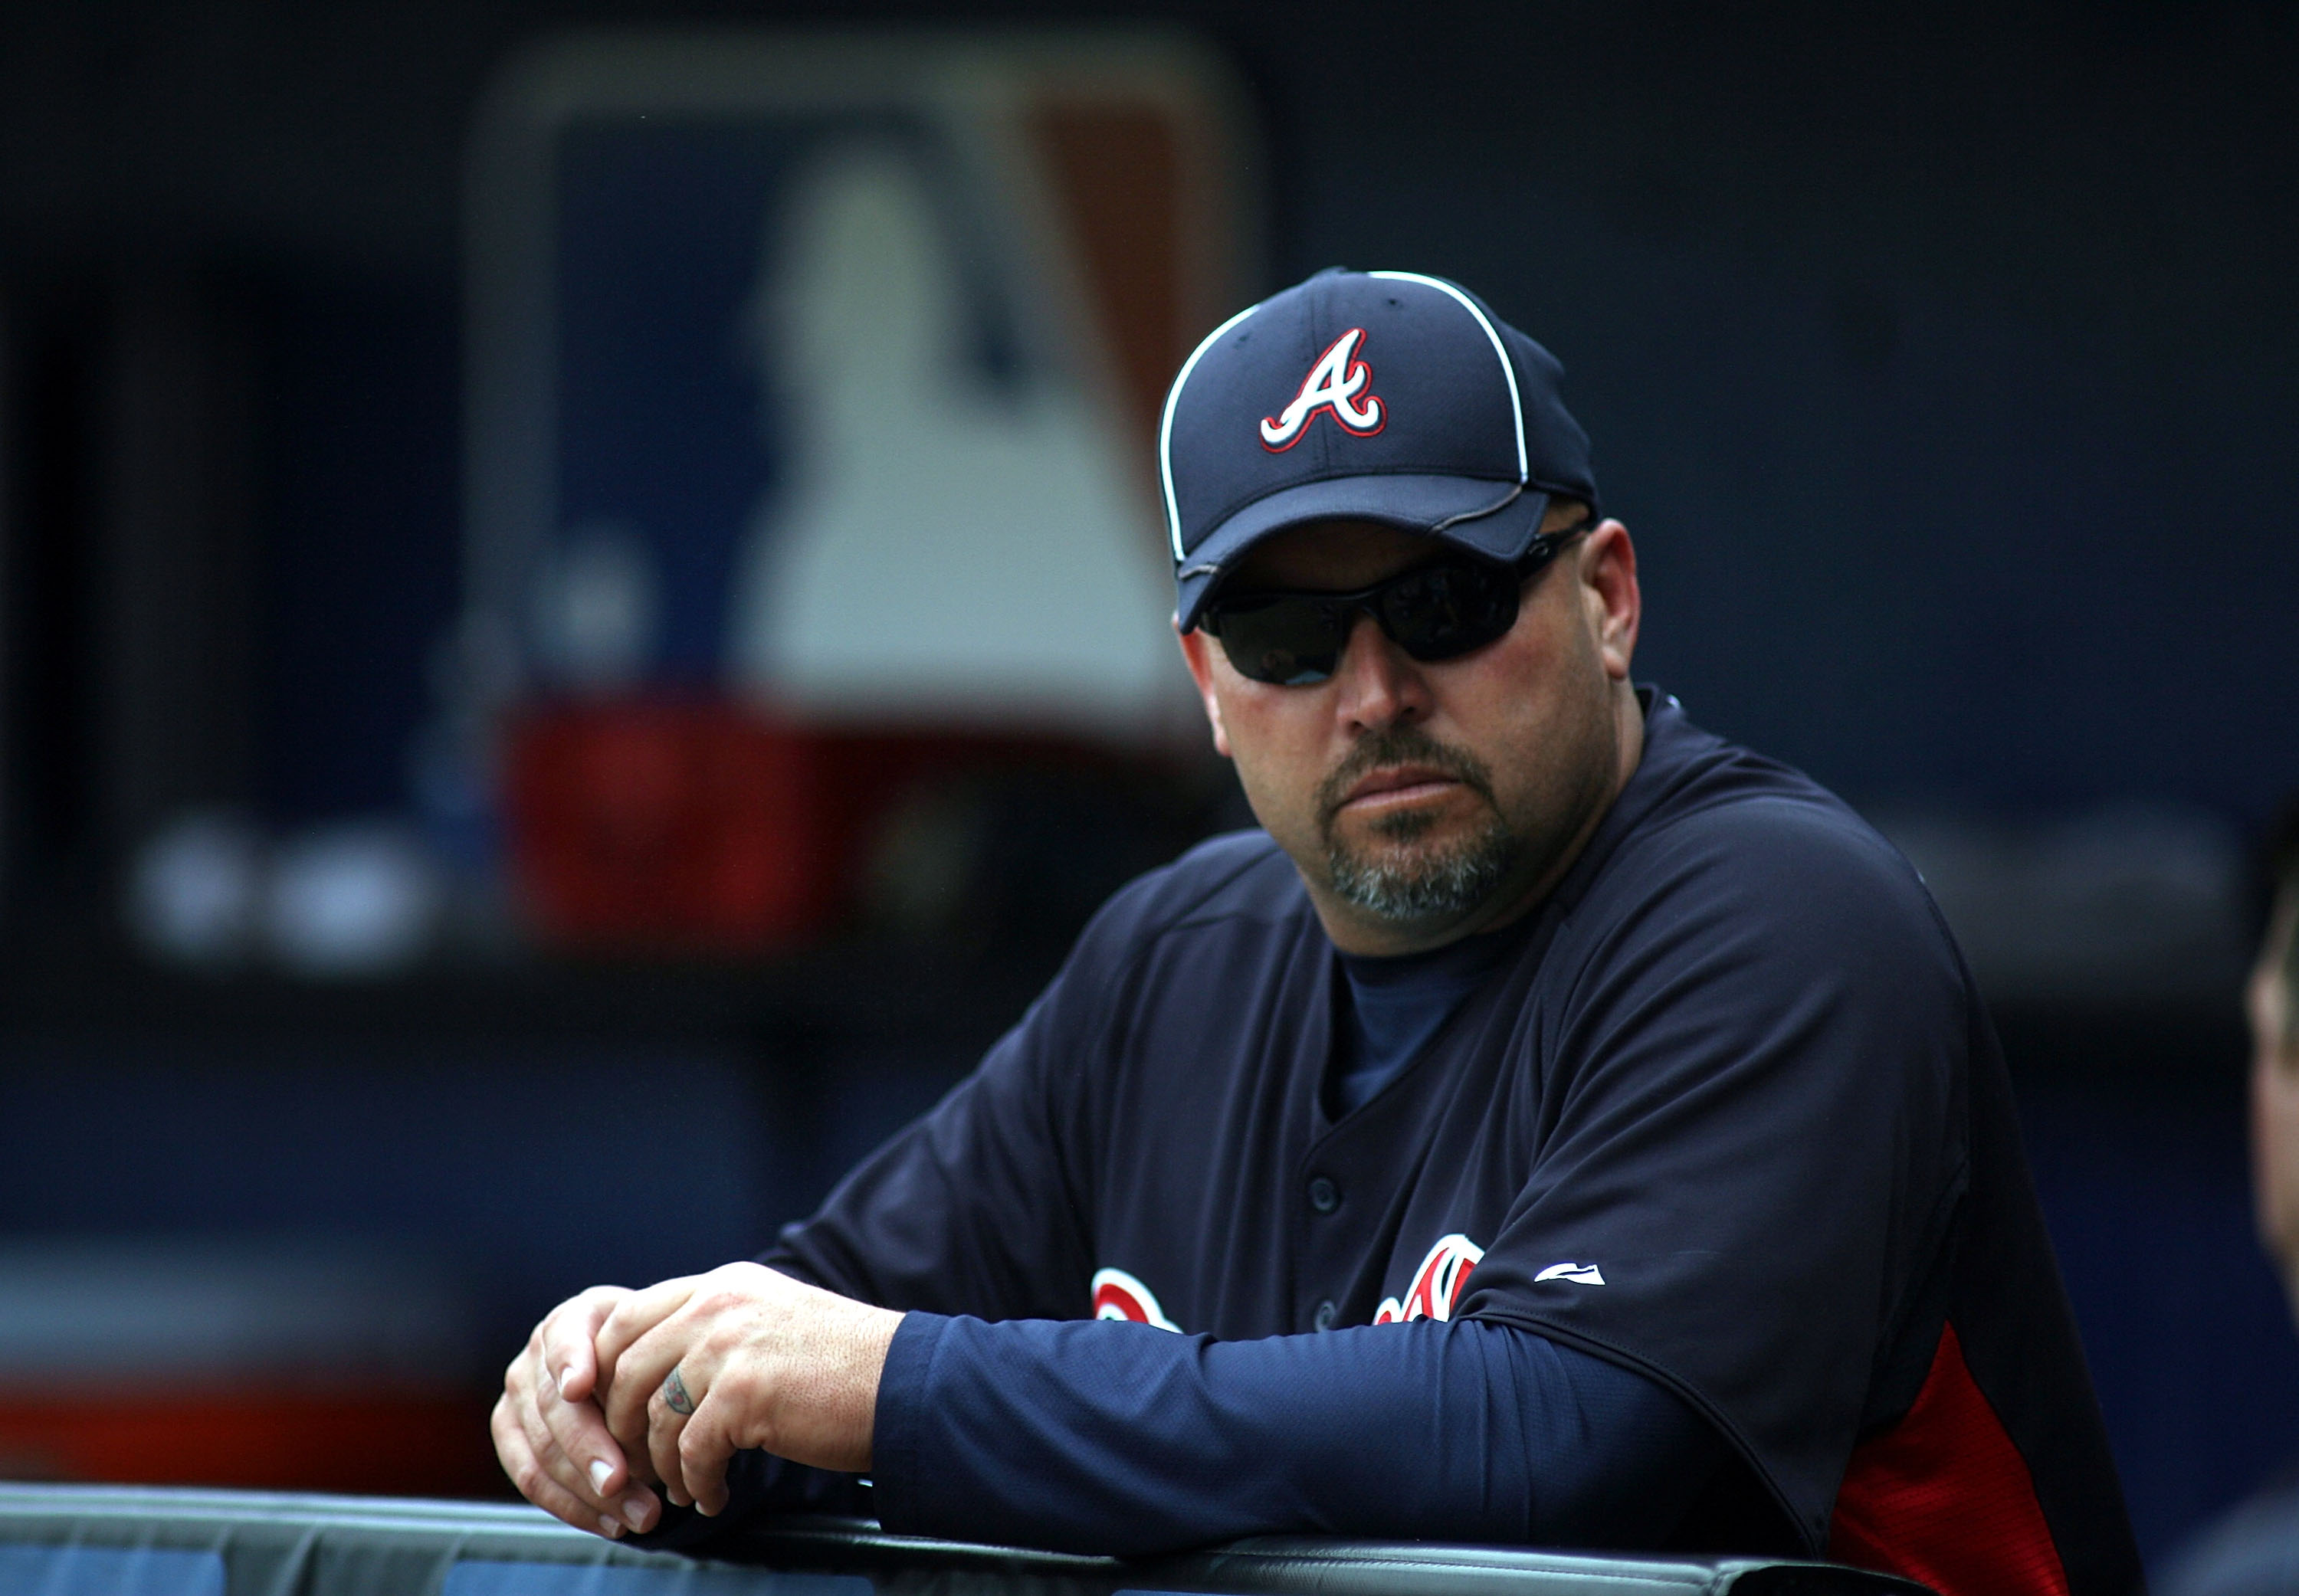 PORT ST. LUCIE, FL - FEBRUARY 26:  Manager Freddie Gonzalez of the Atlanta Braves watches  prior to playing against the New York Mets at Digital Domain Park on February 26, 2011 in Port St. Lucie, Florida.  (Photo by Marc Serota/Getty Images)